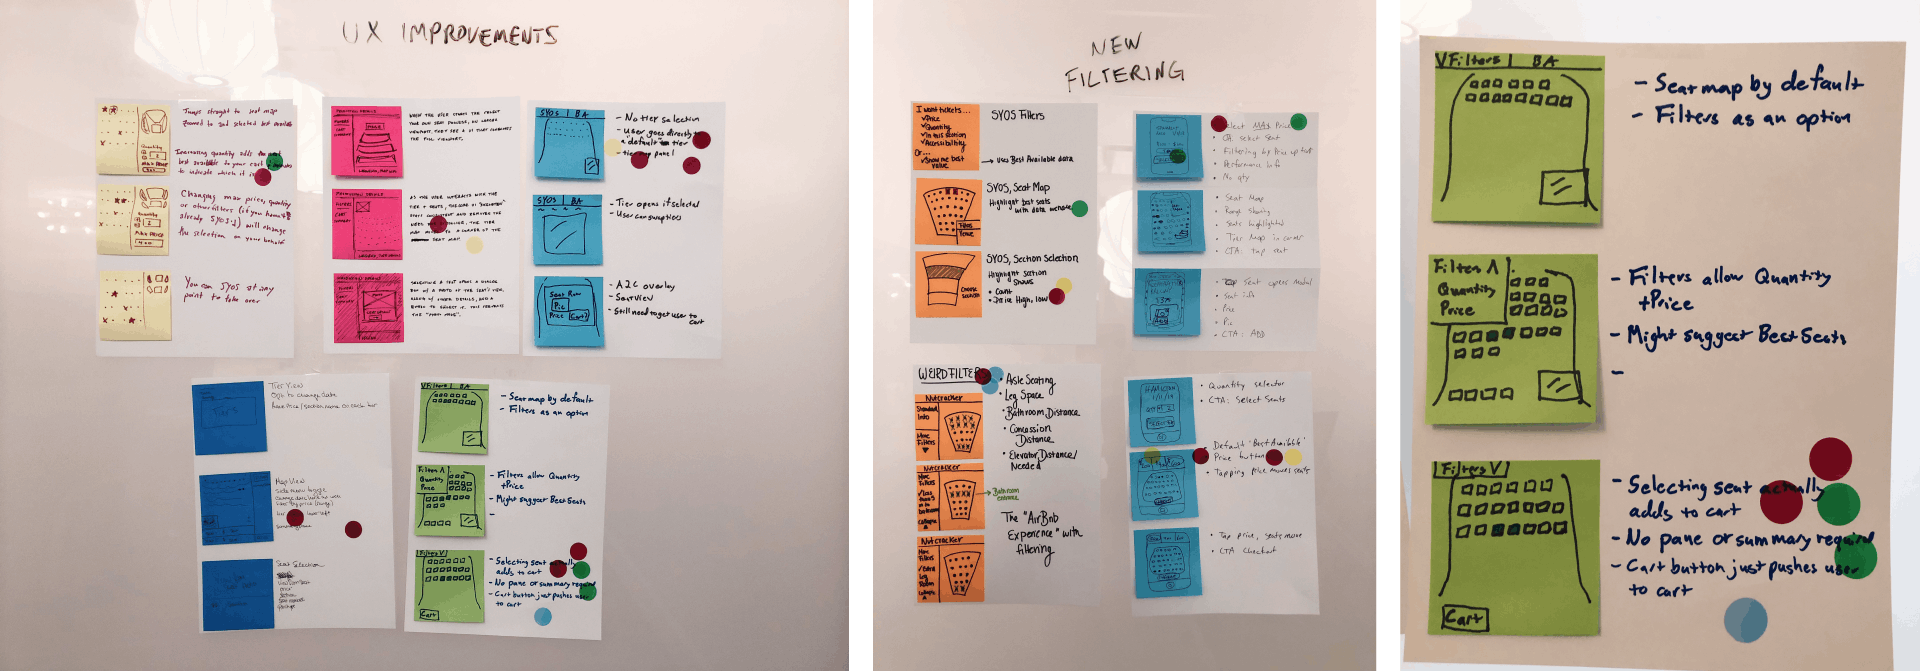 Three photos from the Pittsburgh Cultural Trust design sprint; storyboard sketches arranged on a wall with writing above that says UX Improvements, storyboard sketches arranged on a wall with writing above that says New Filtering, green sticky notes with drawings on them and notes to the right of them.